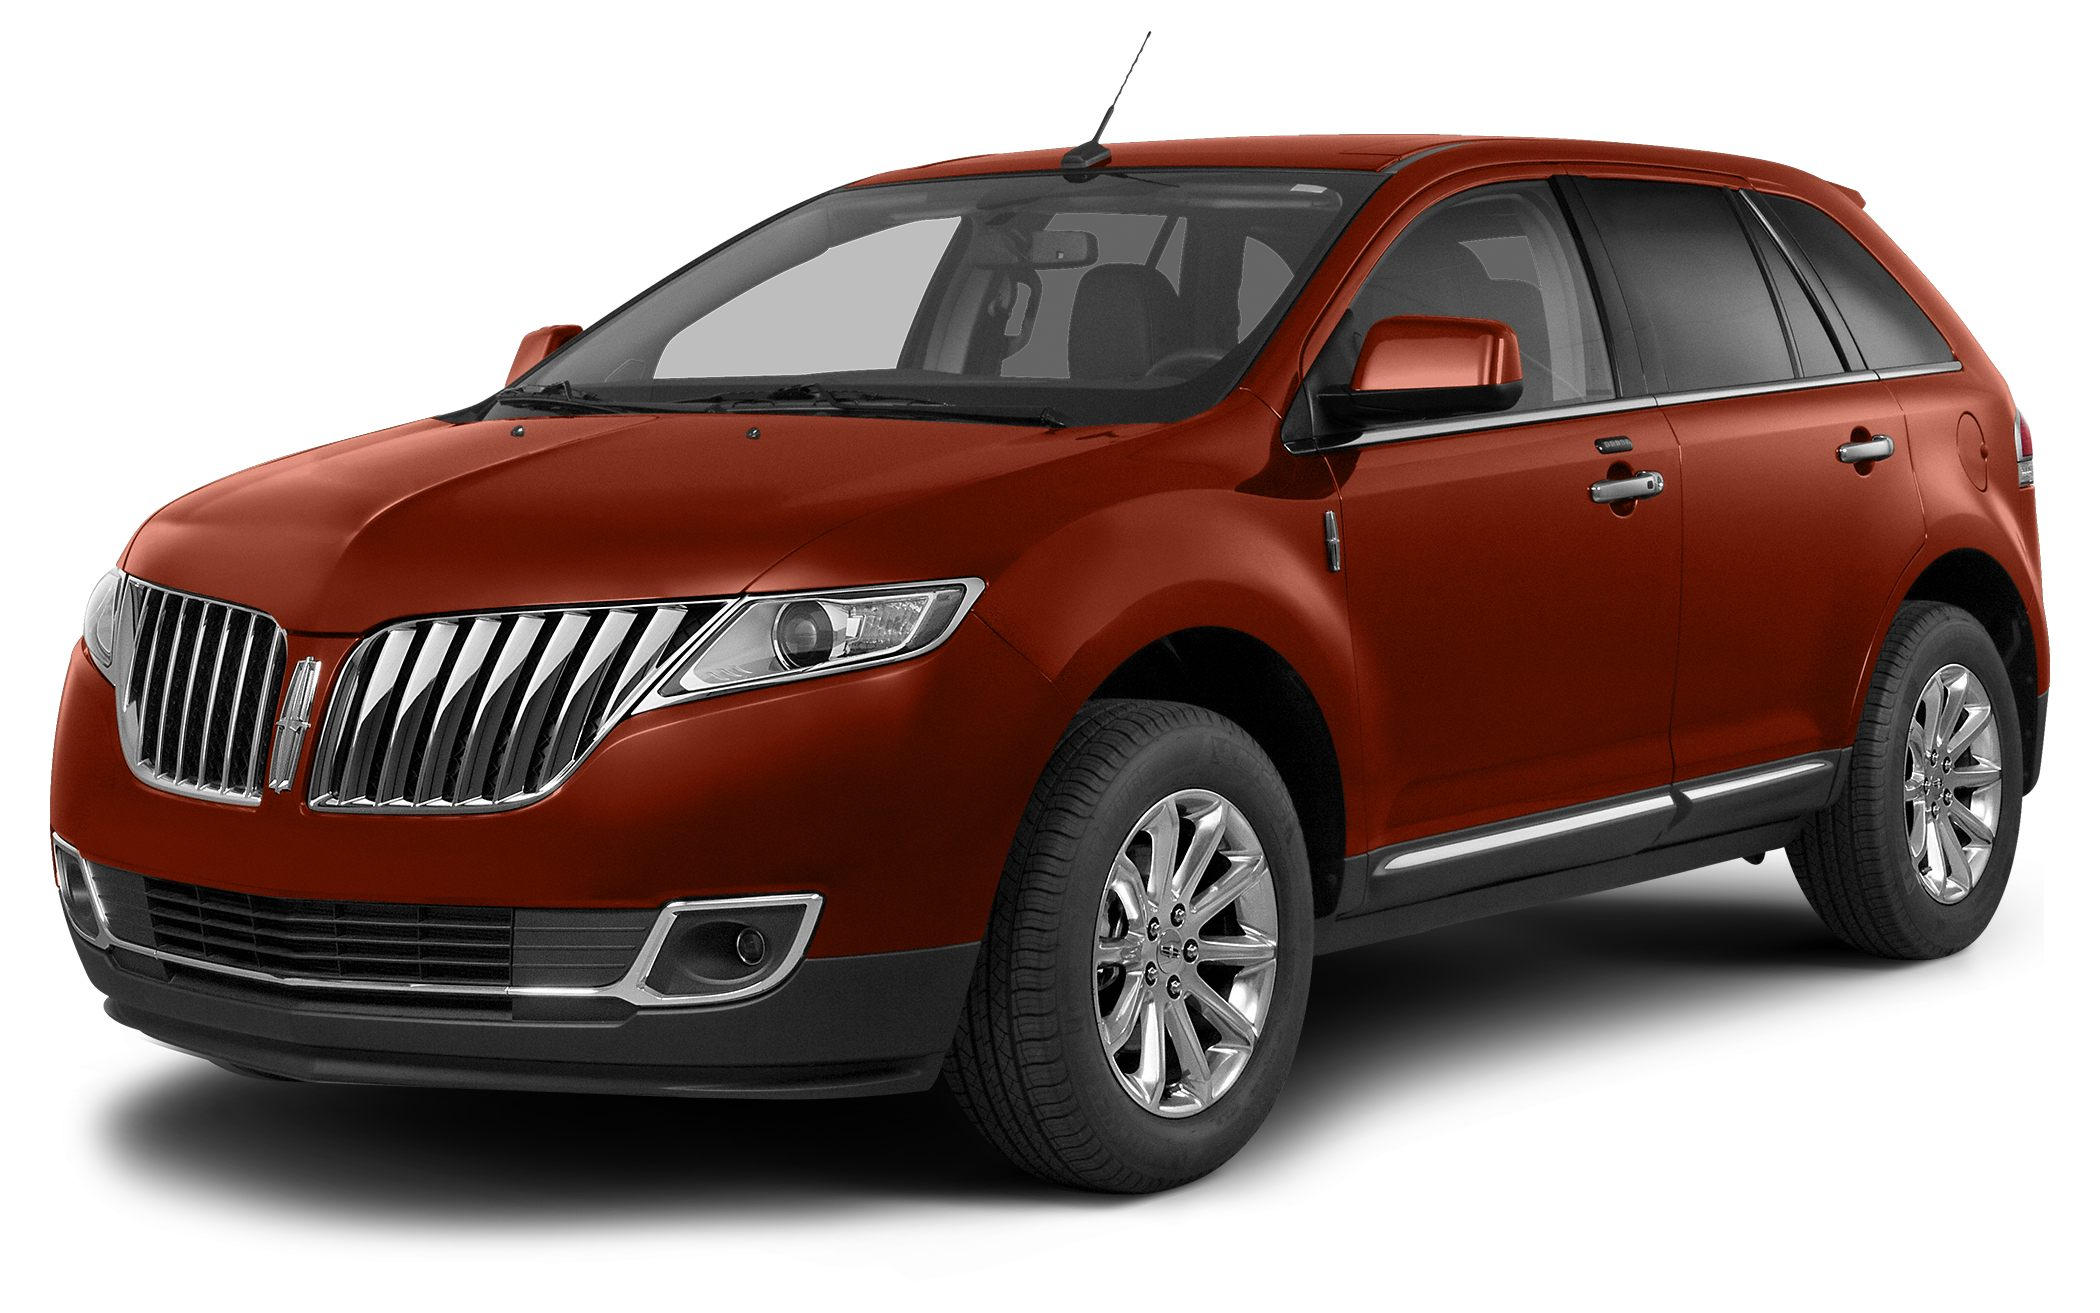 2014 Lincoln MKX Sunset Metallic